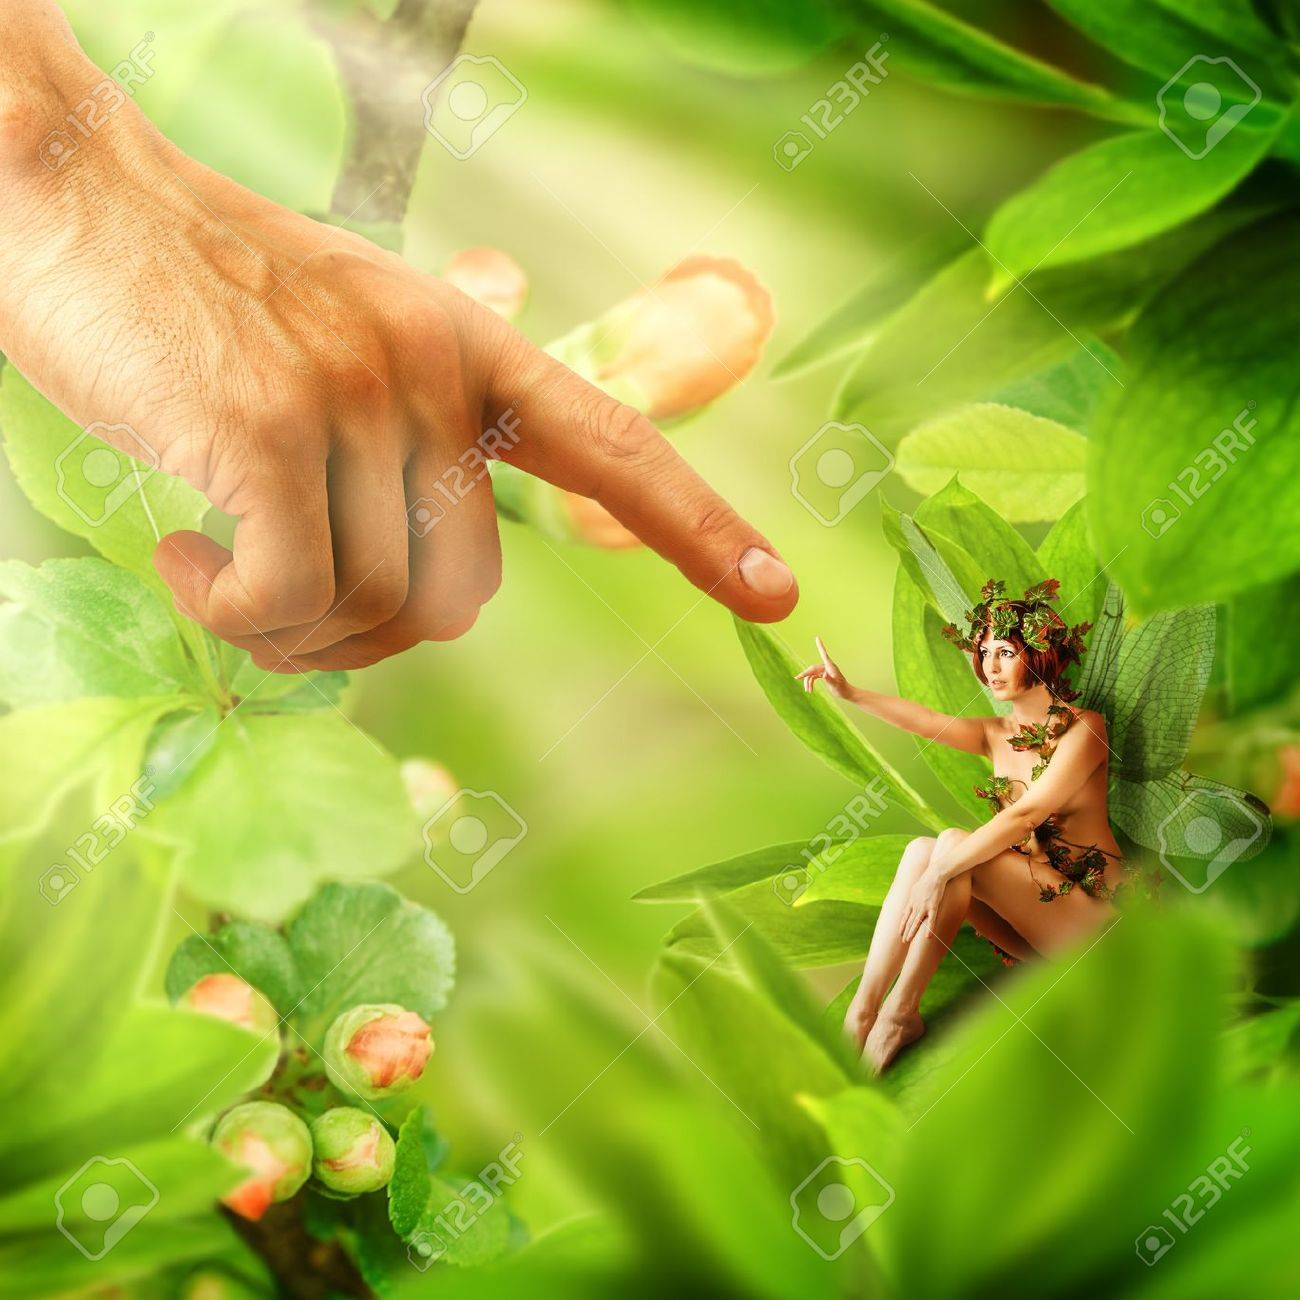 Human Hand Touching His Finger To Finger Of Garden Fairy Sitting